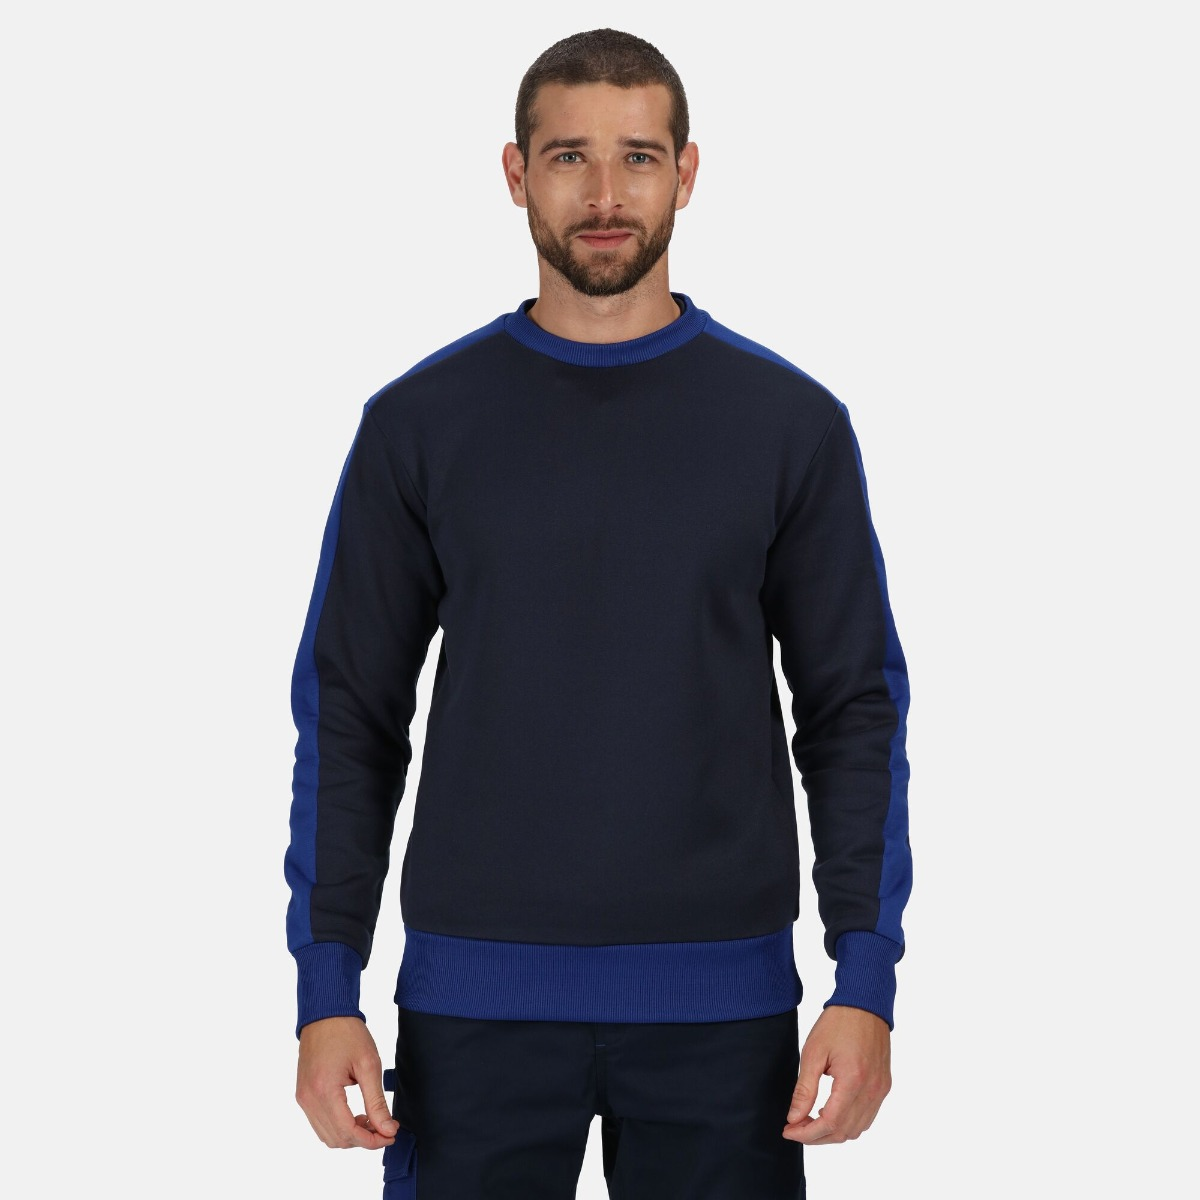 Regatta Contrast Crew Neck Sweater, Navy New Royal, Size XS